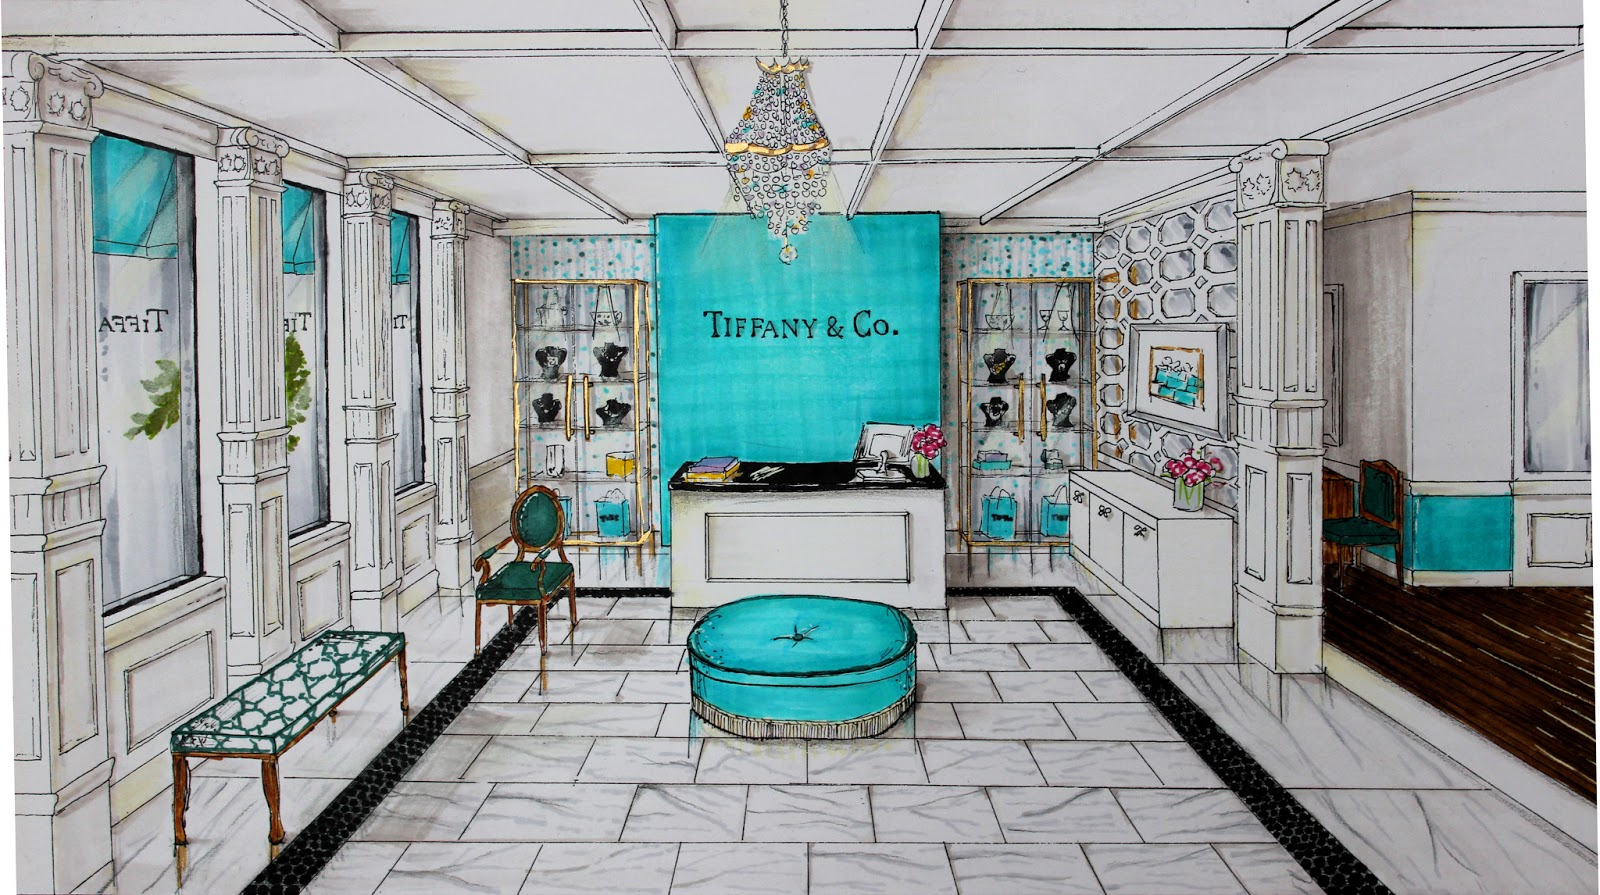 Tiffany co reception completed project home design for Project home designs